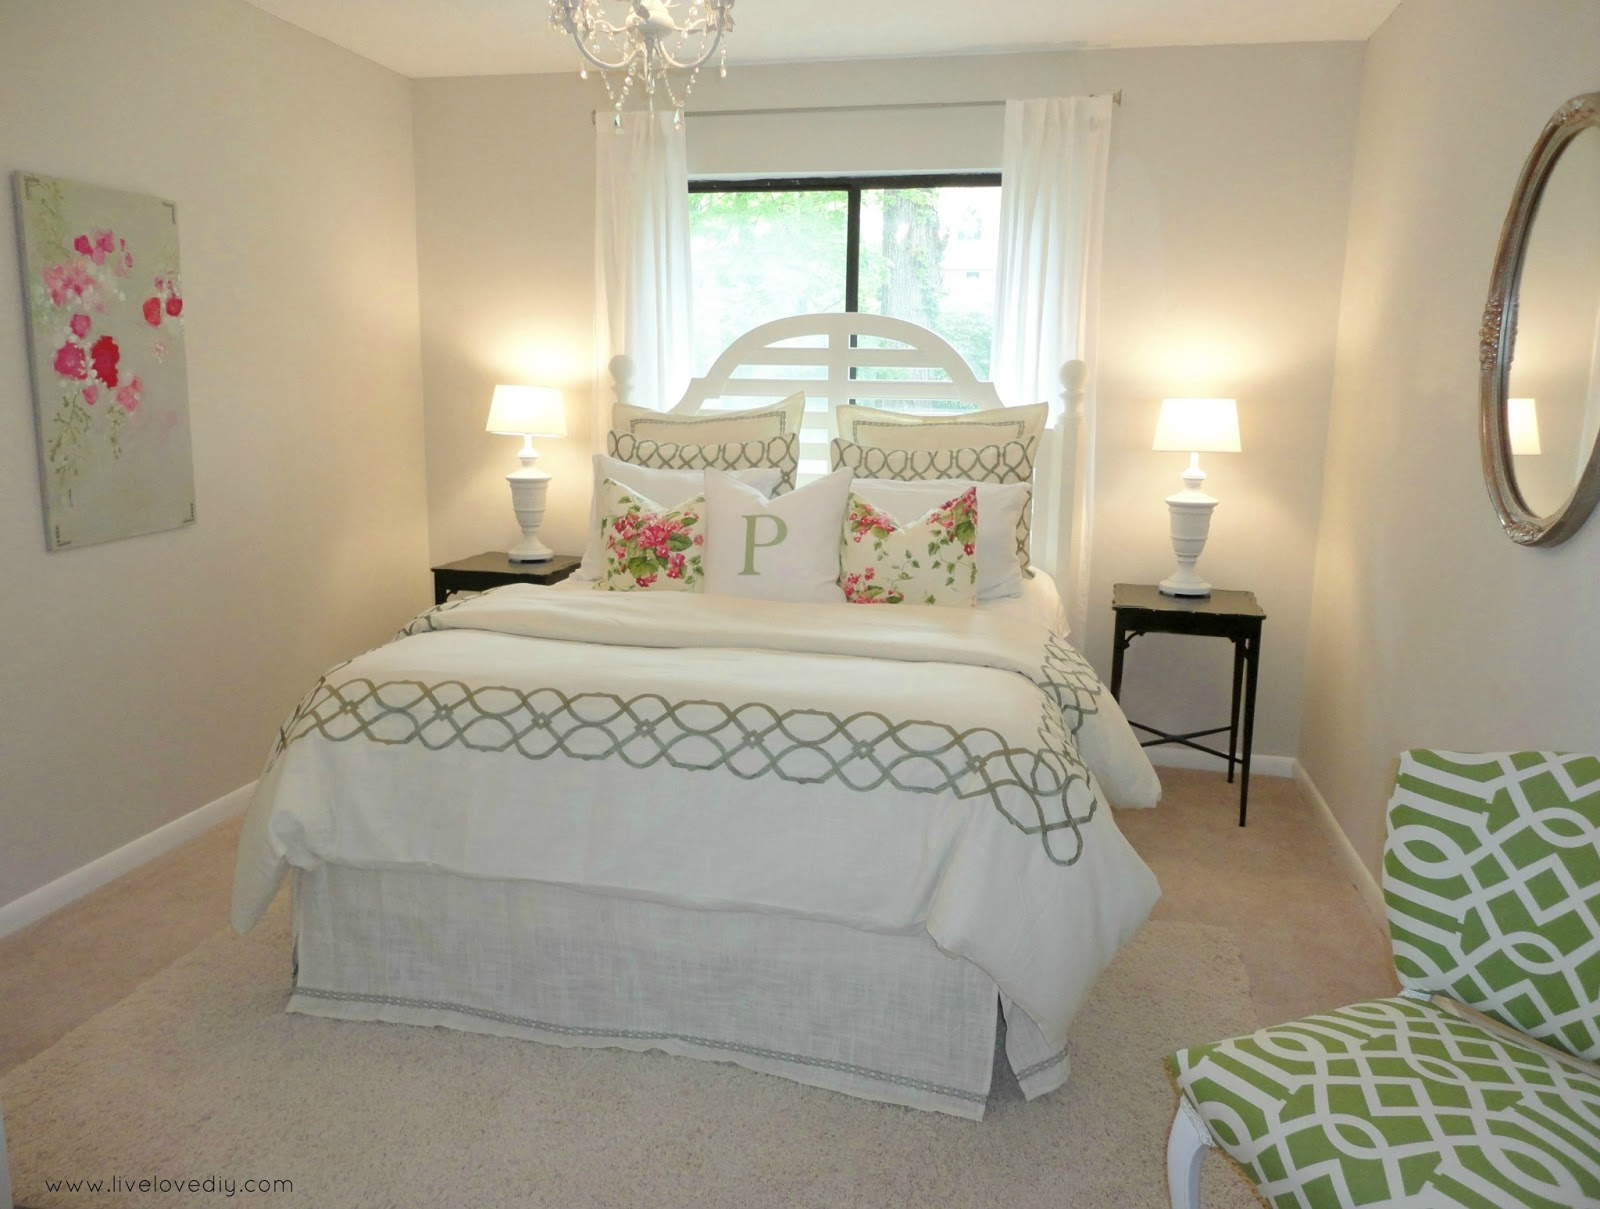 Decorating Bedrooms with Secondhand Finds  The Guest Bedroom Reveal. LiveLoveDIY  Decorating Bedrooms with Secondhand Finds  The Guest